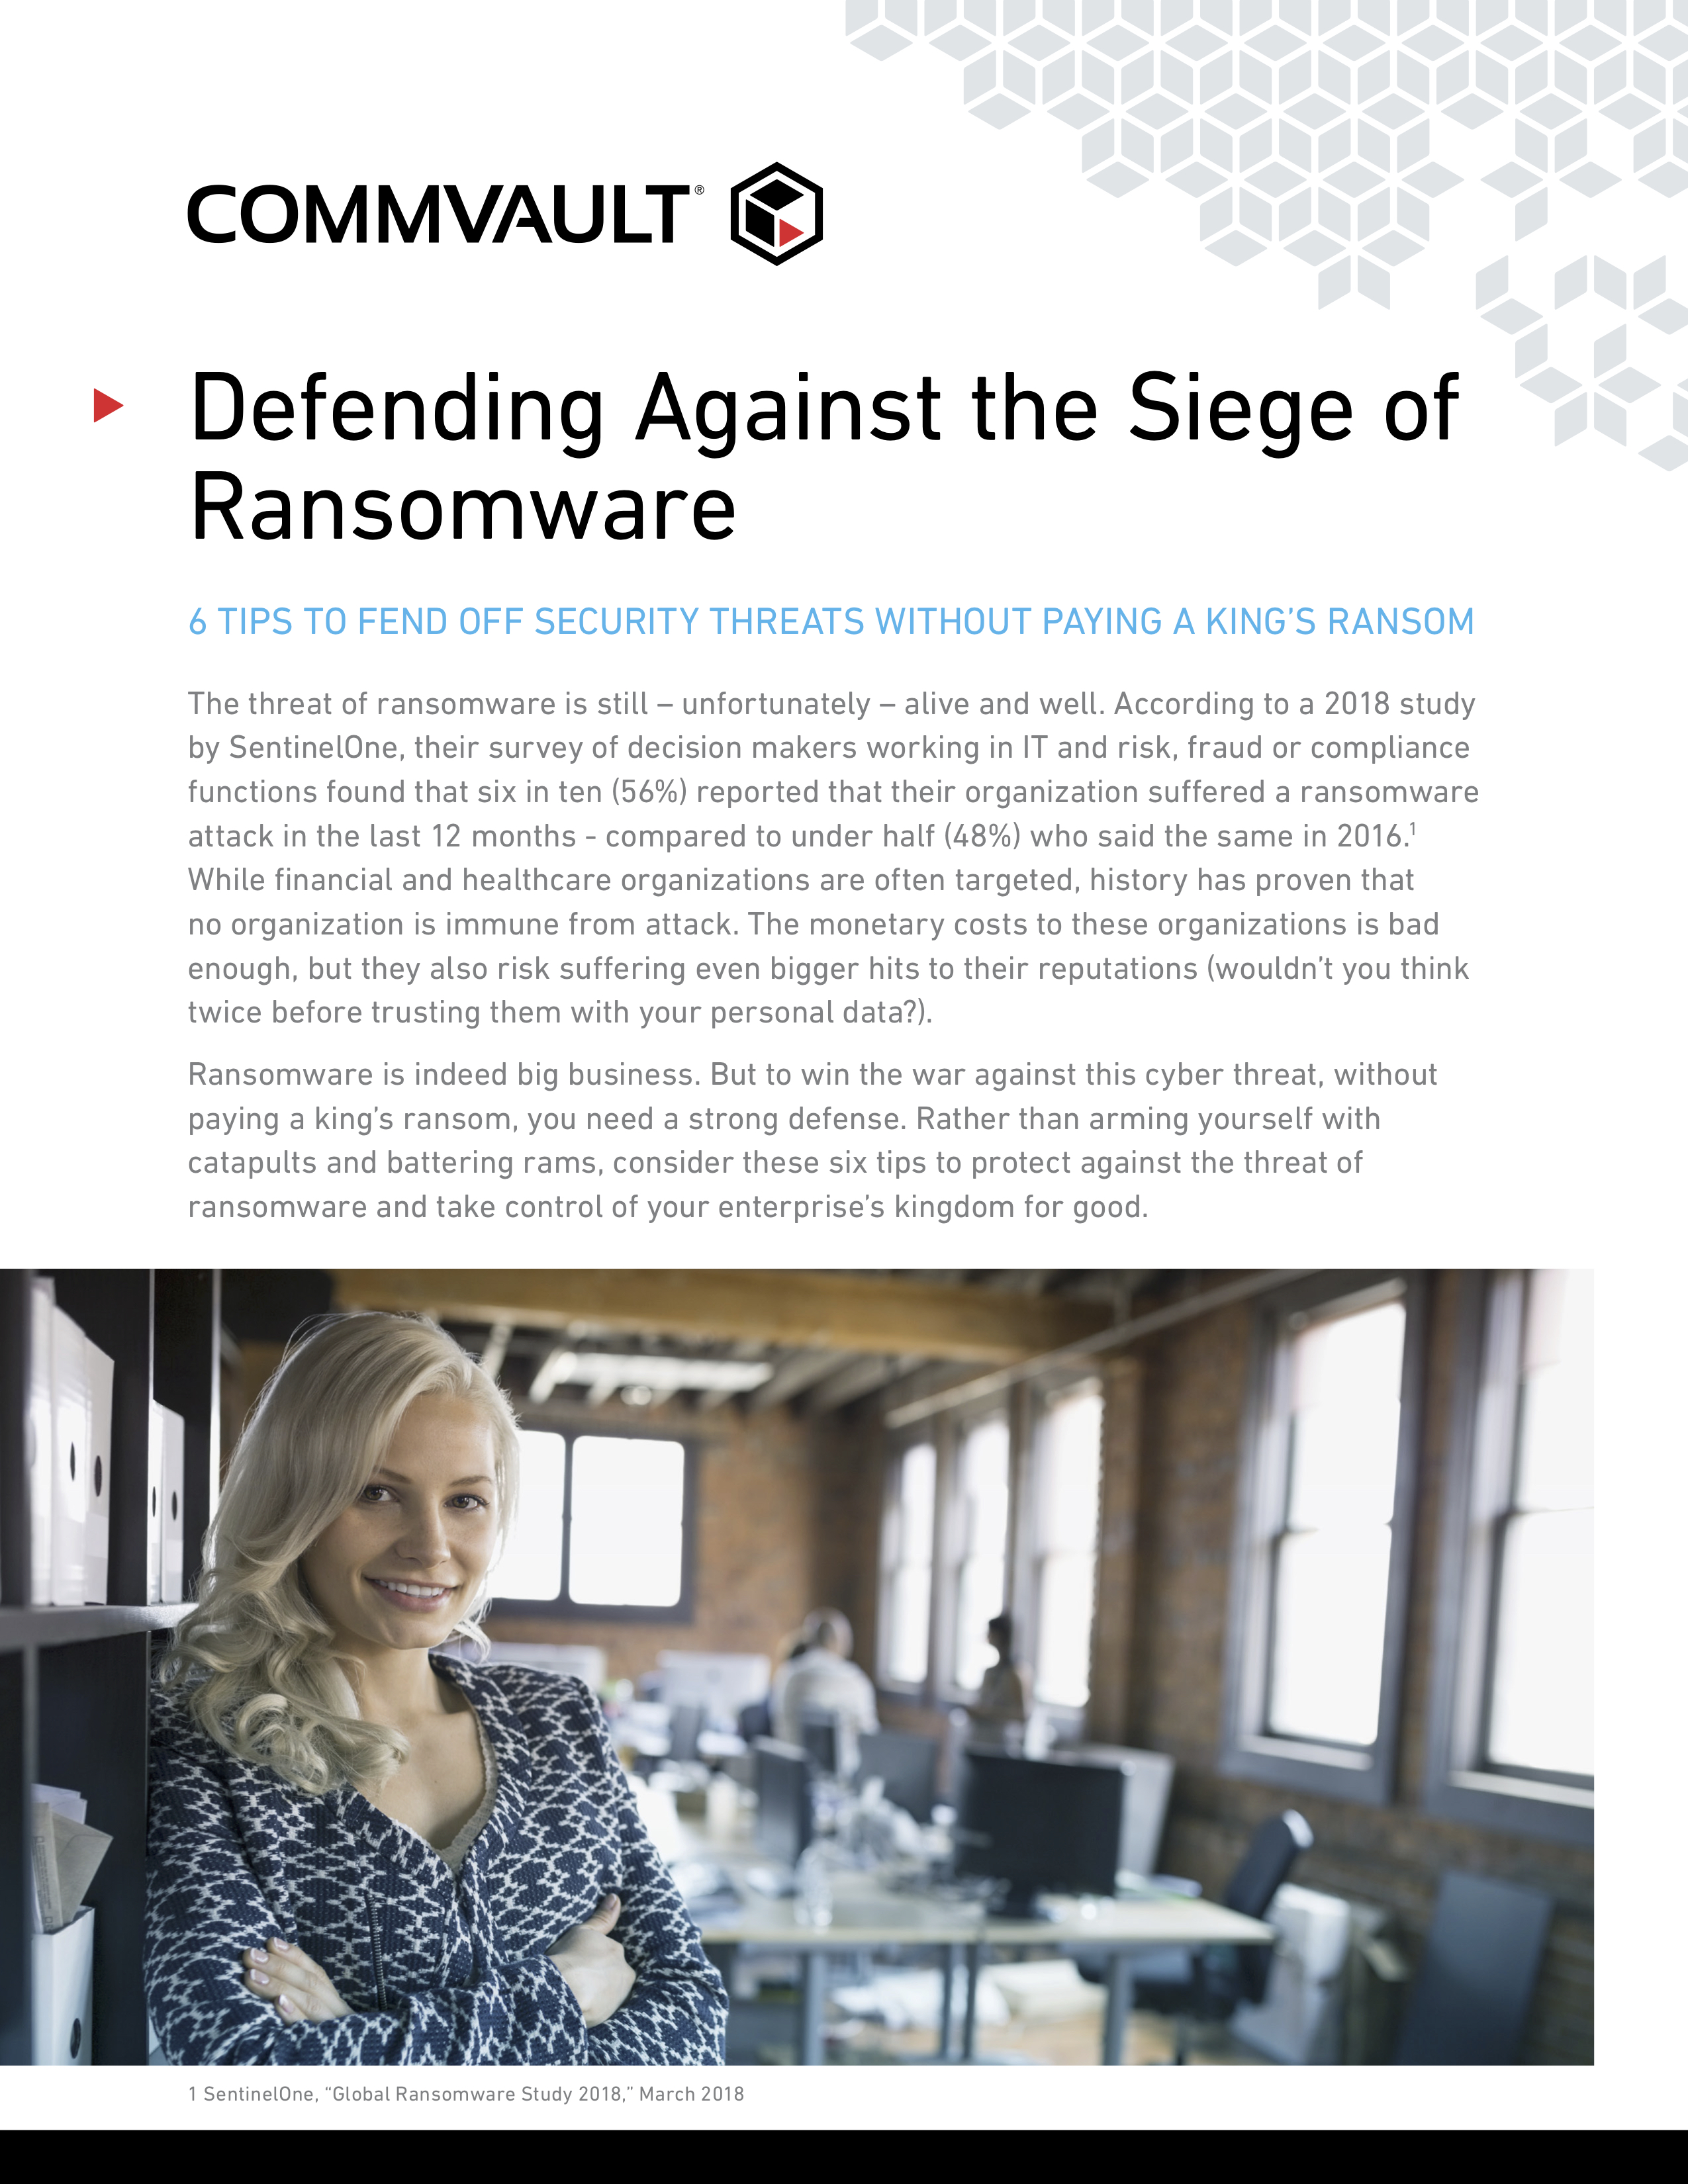 Square cropped defending against the siege of ransomware cover 1  verschoben  5a0b70f6371a75bf